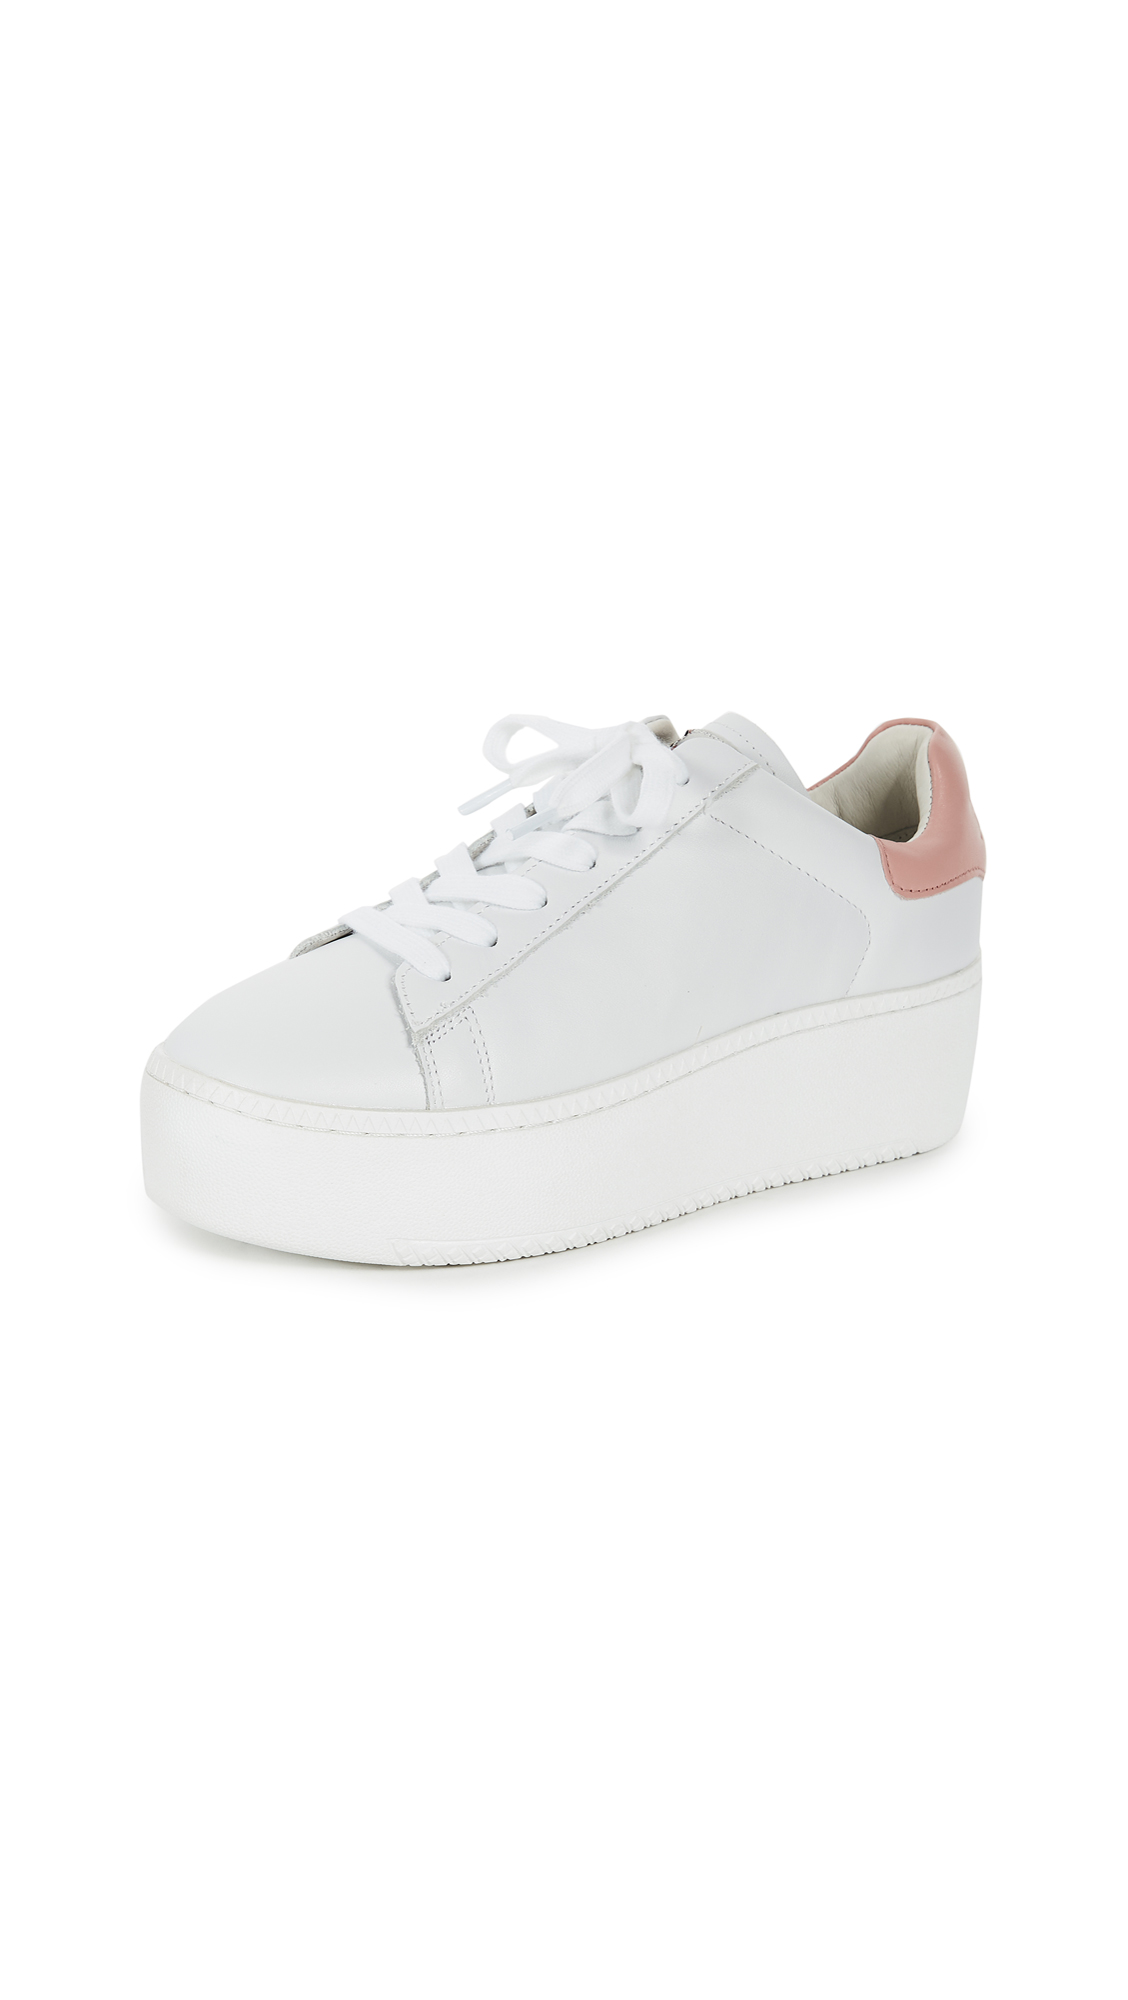 Ash Cult Platform Sneakers - White/Blush